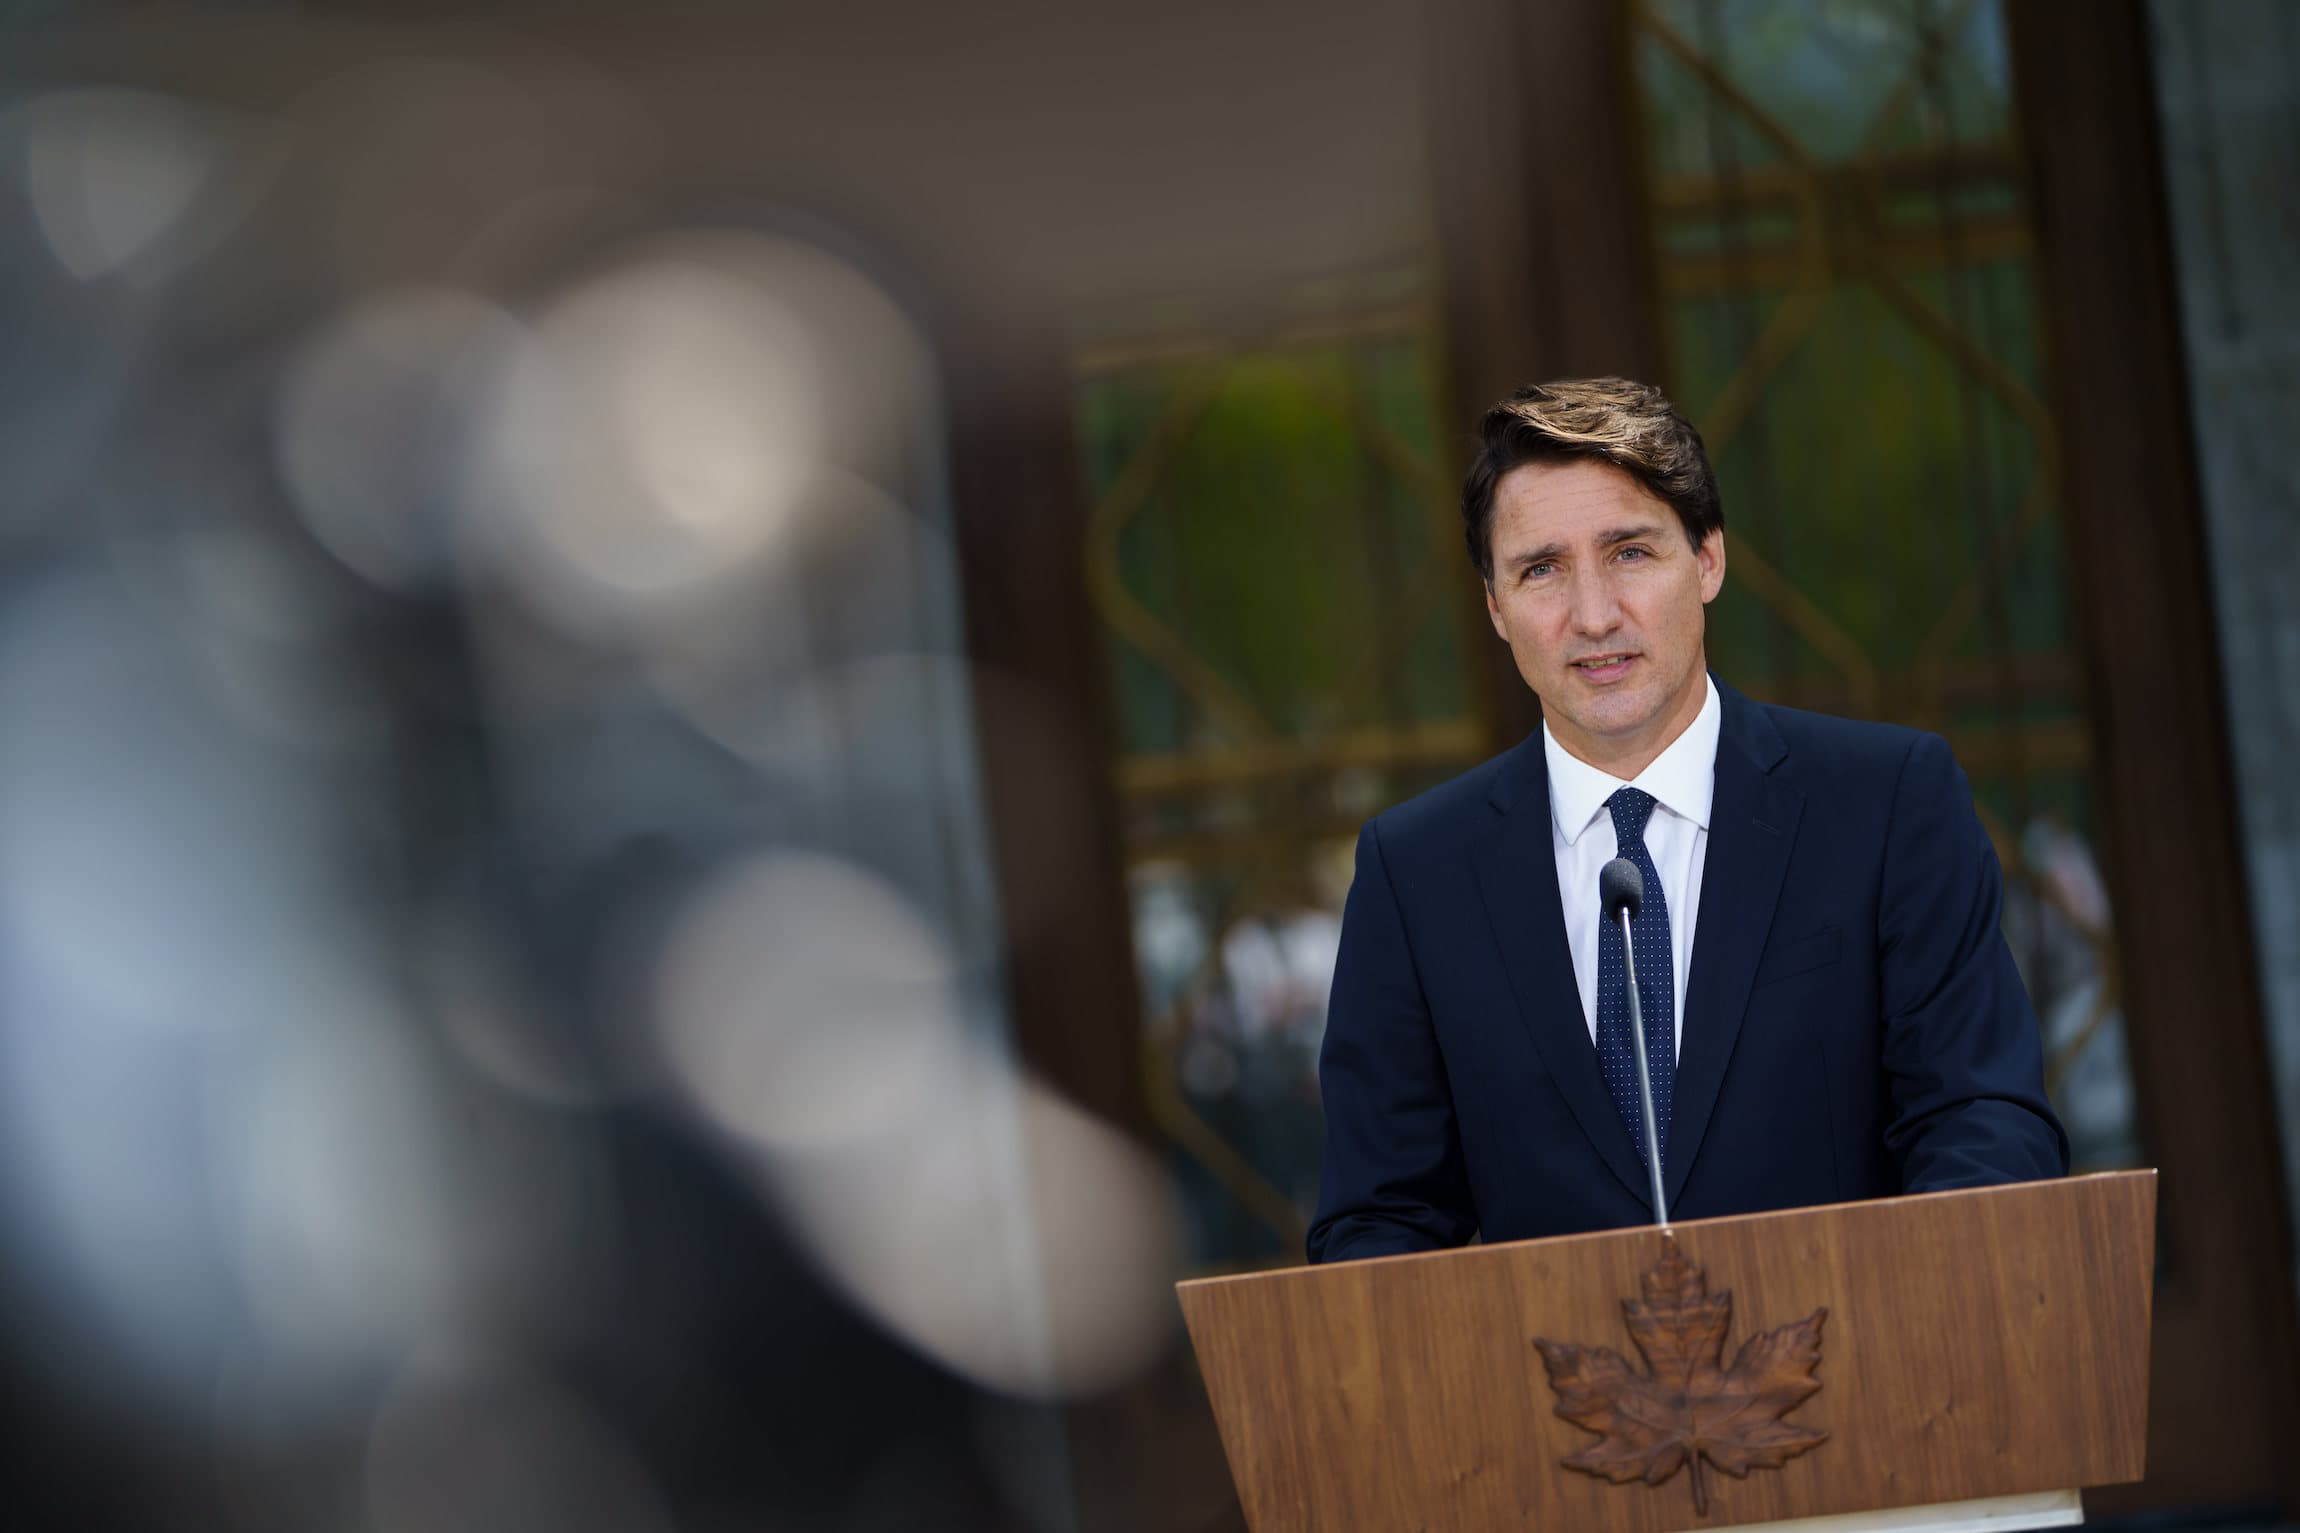 Federal election 2021: Liberal Leader Justin Trudeau is seen speaking